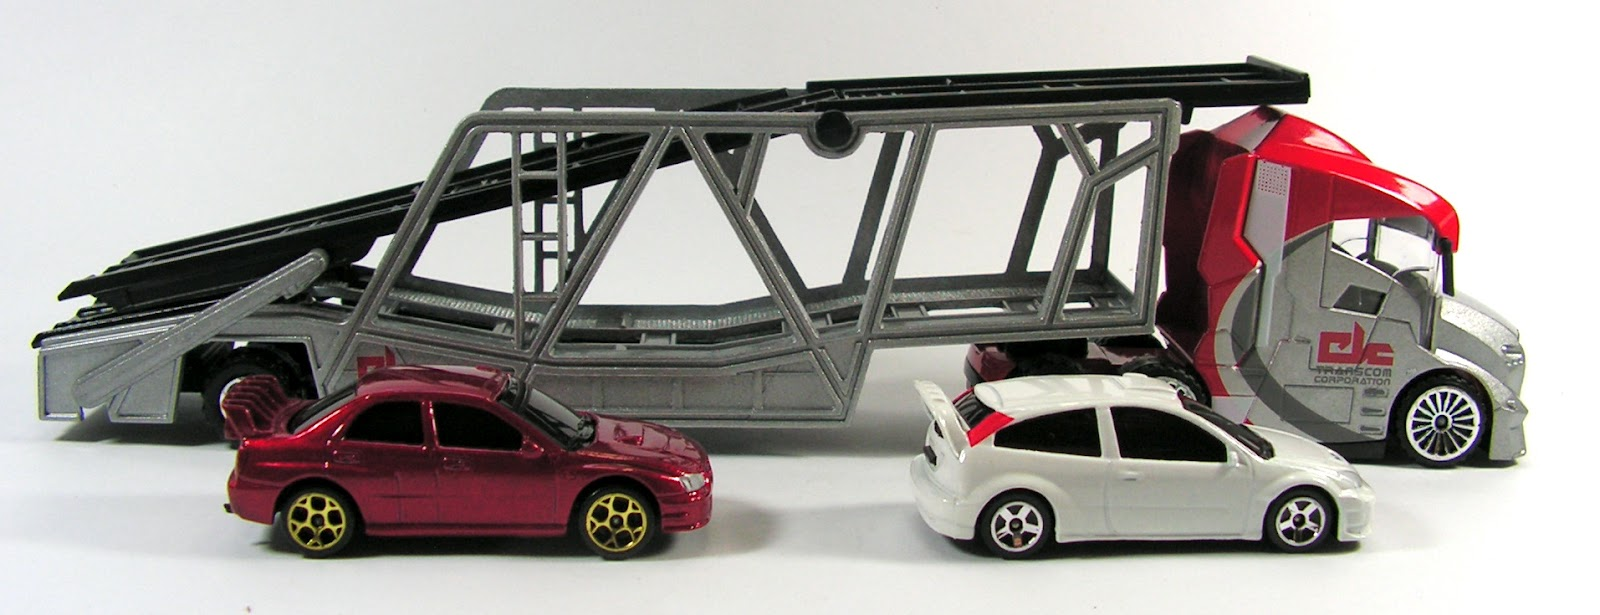 Toy Car Rack : Capital diecast garage majorette car carrier